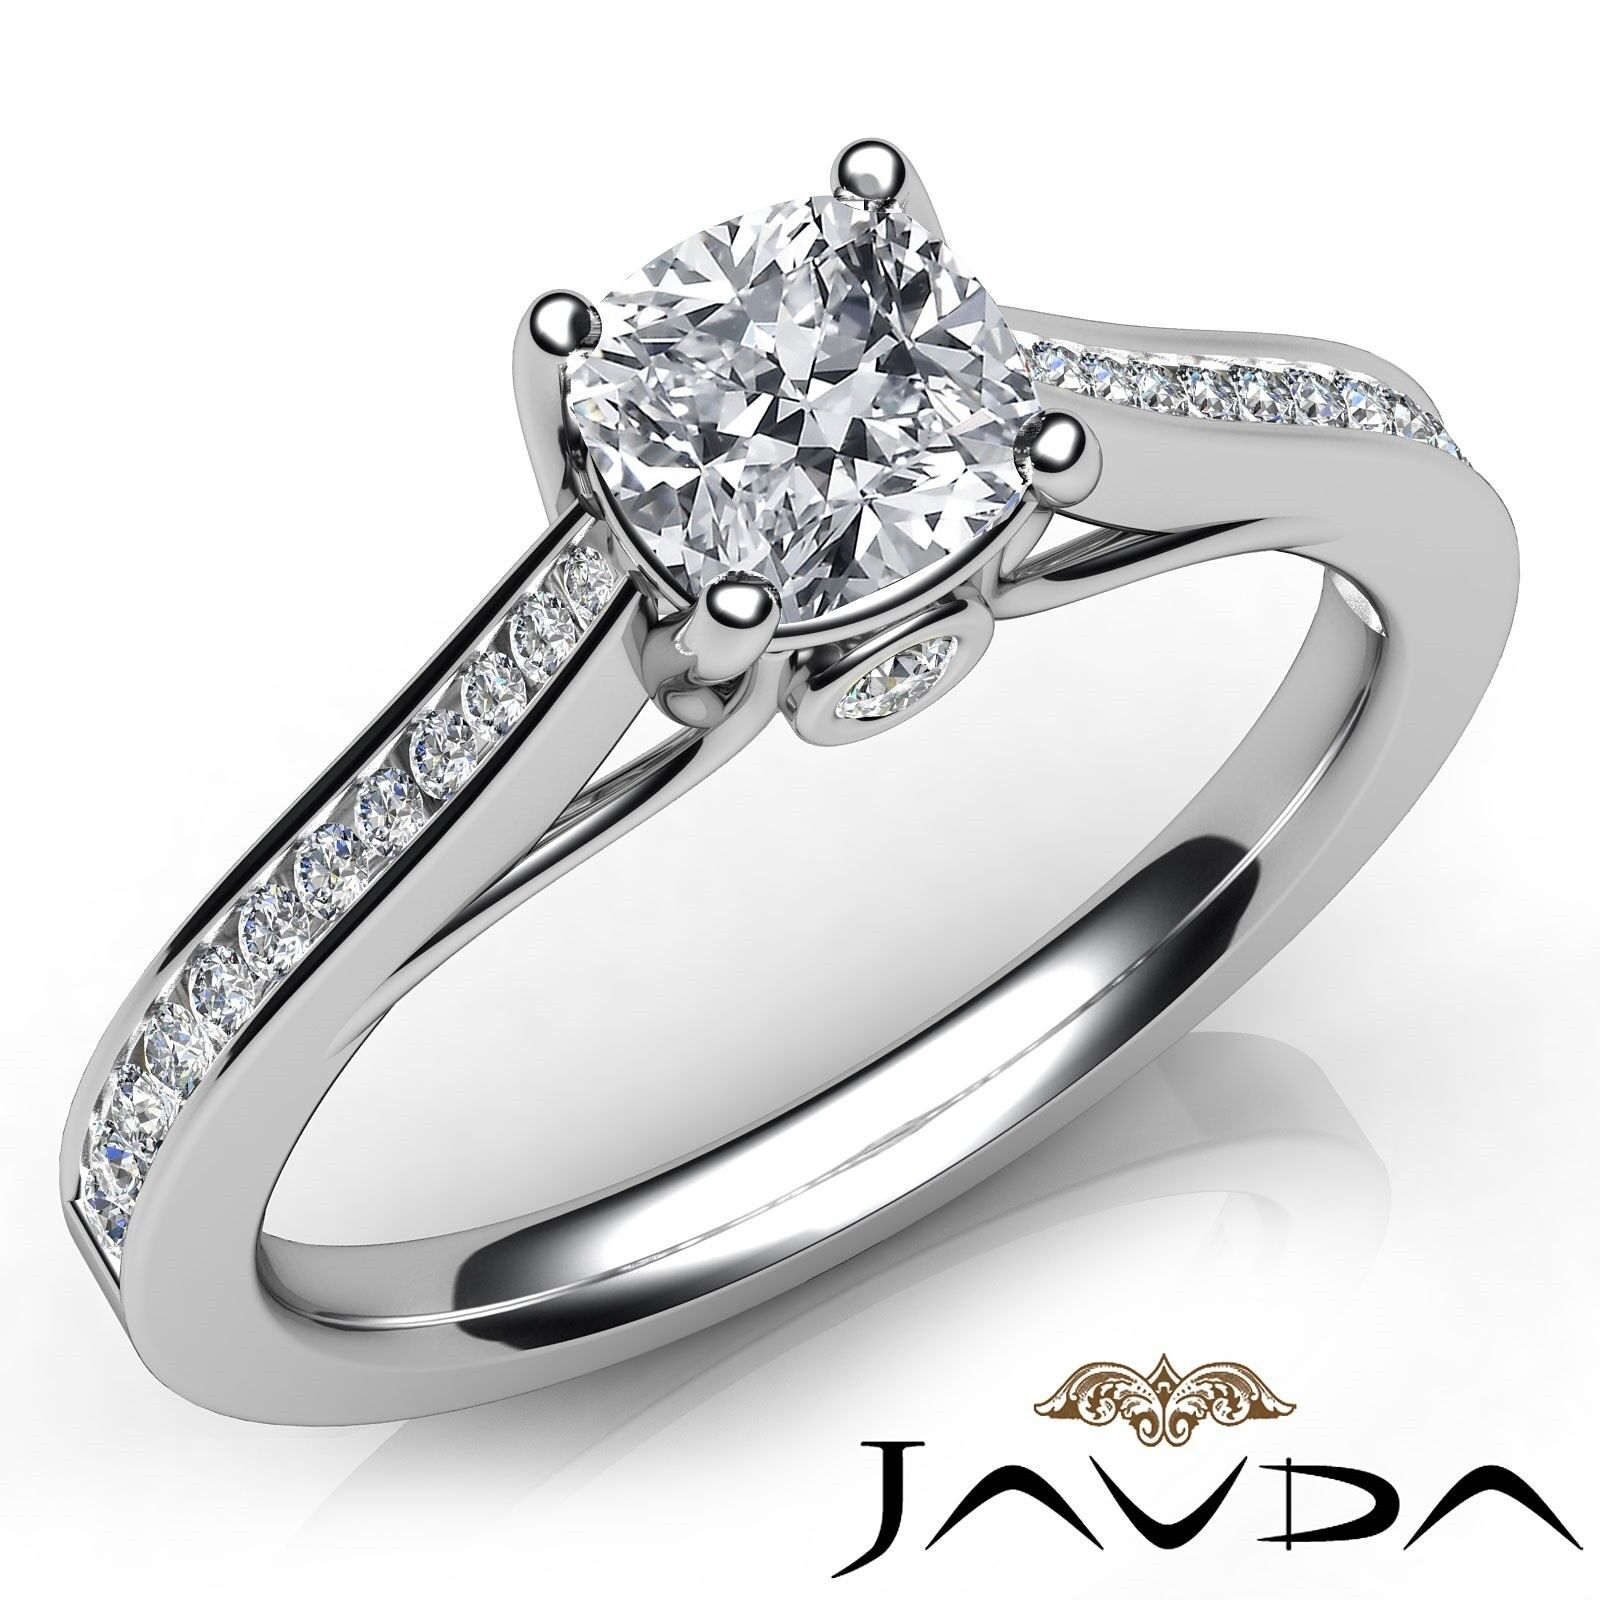 0.8ctw Channel Bezel Prong Set Cushion Diamond Engagement Ring GIA D-SI1 W Gold